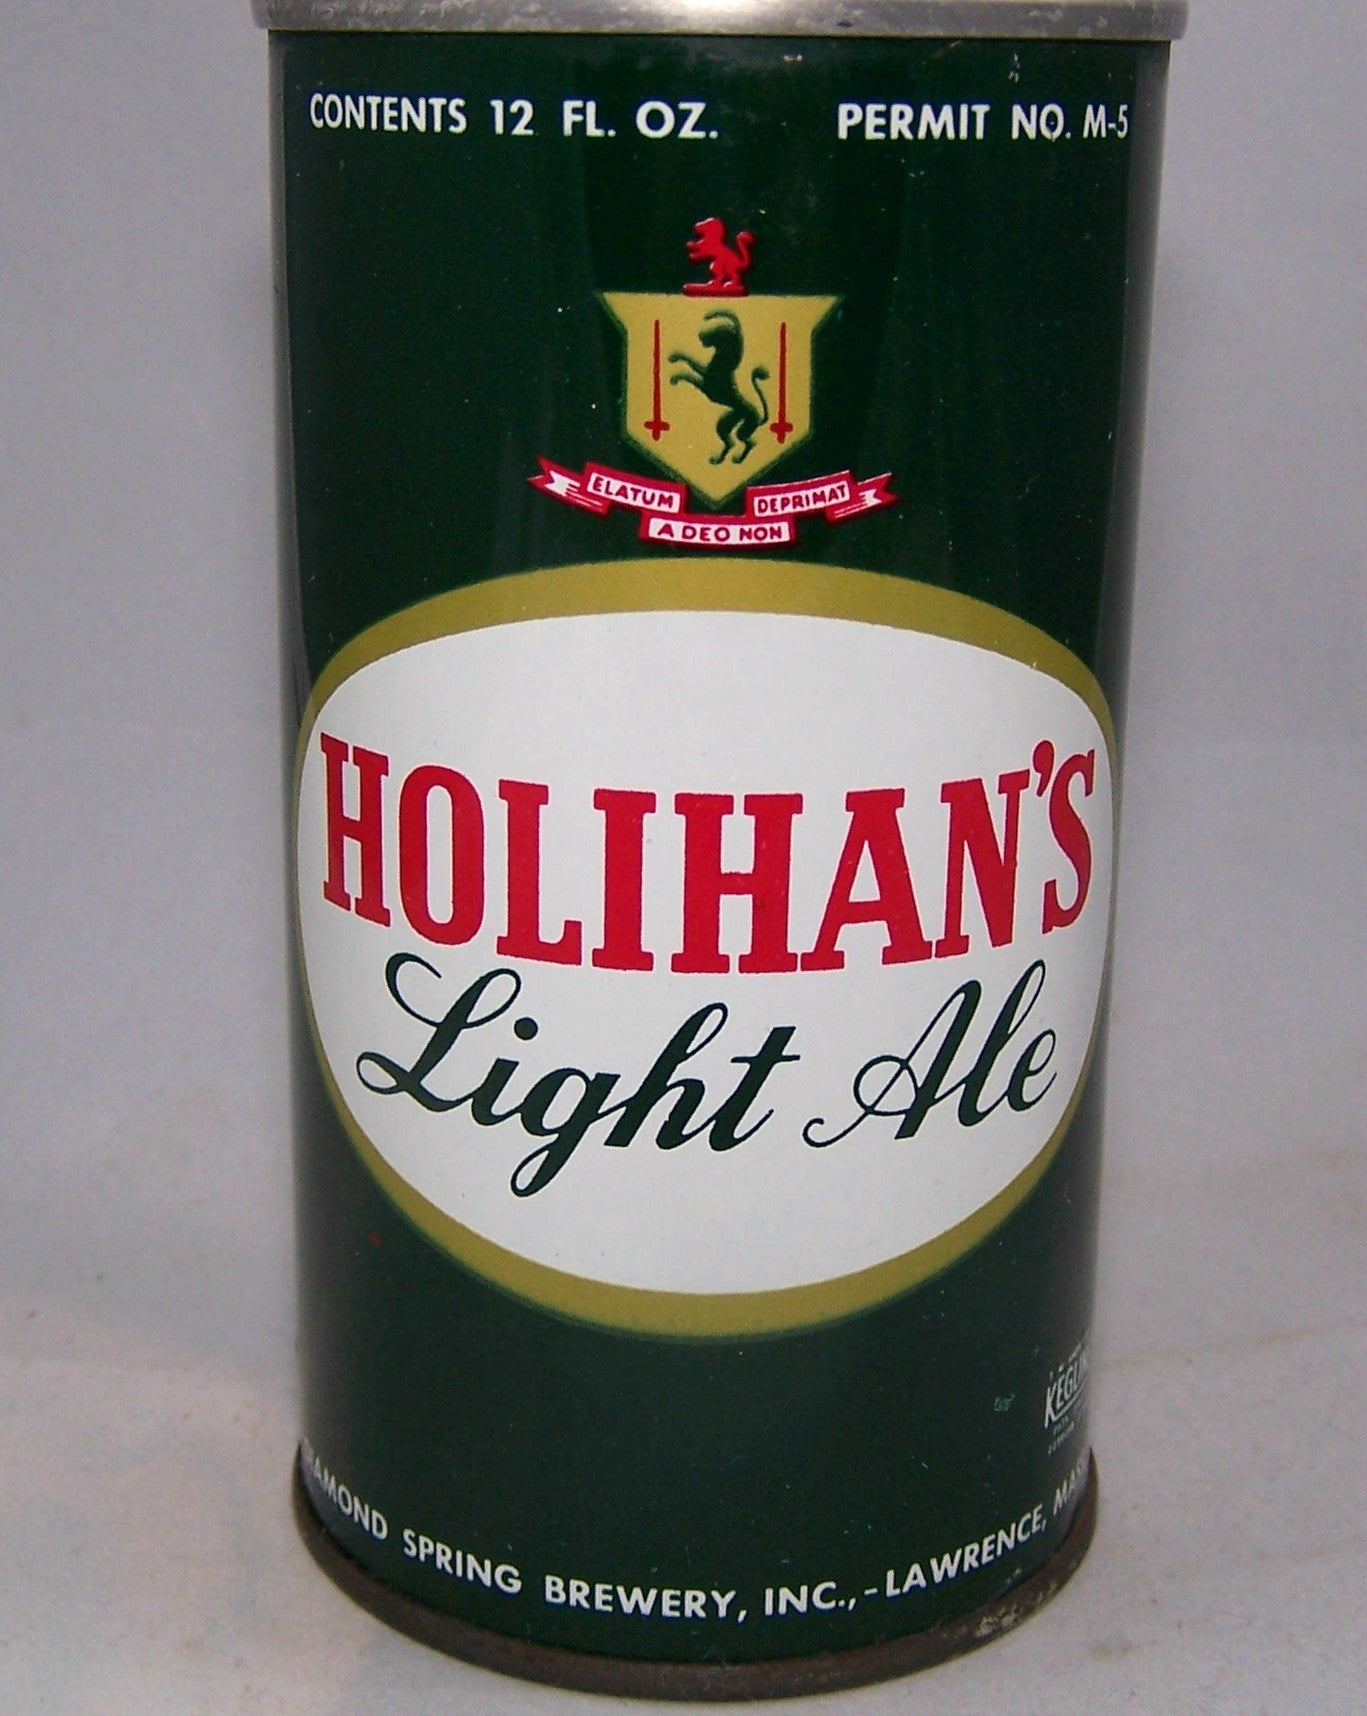 Holihan's Light Ale USBC II 76-38, Grade 1/1+ Sold on 06/26/19